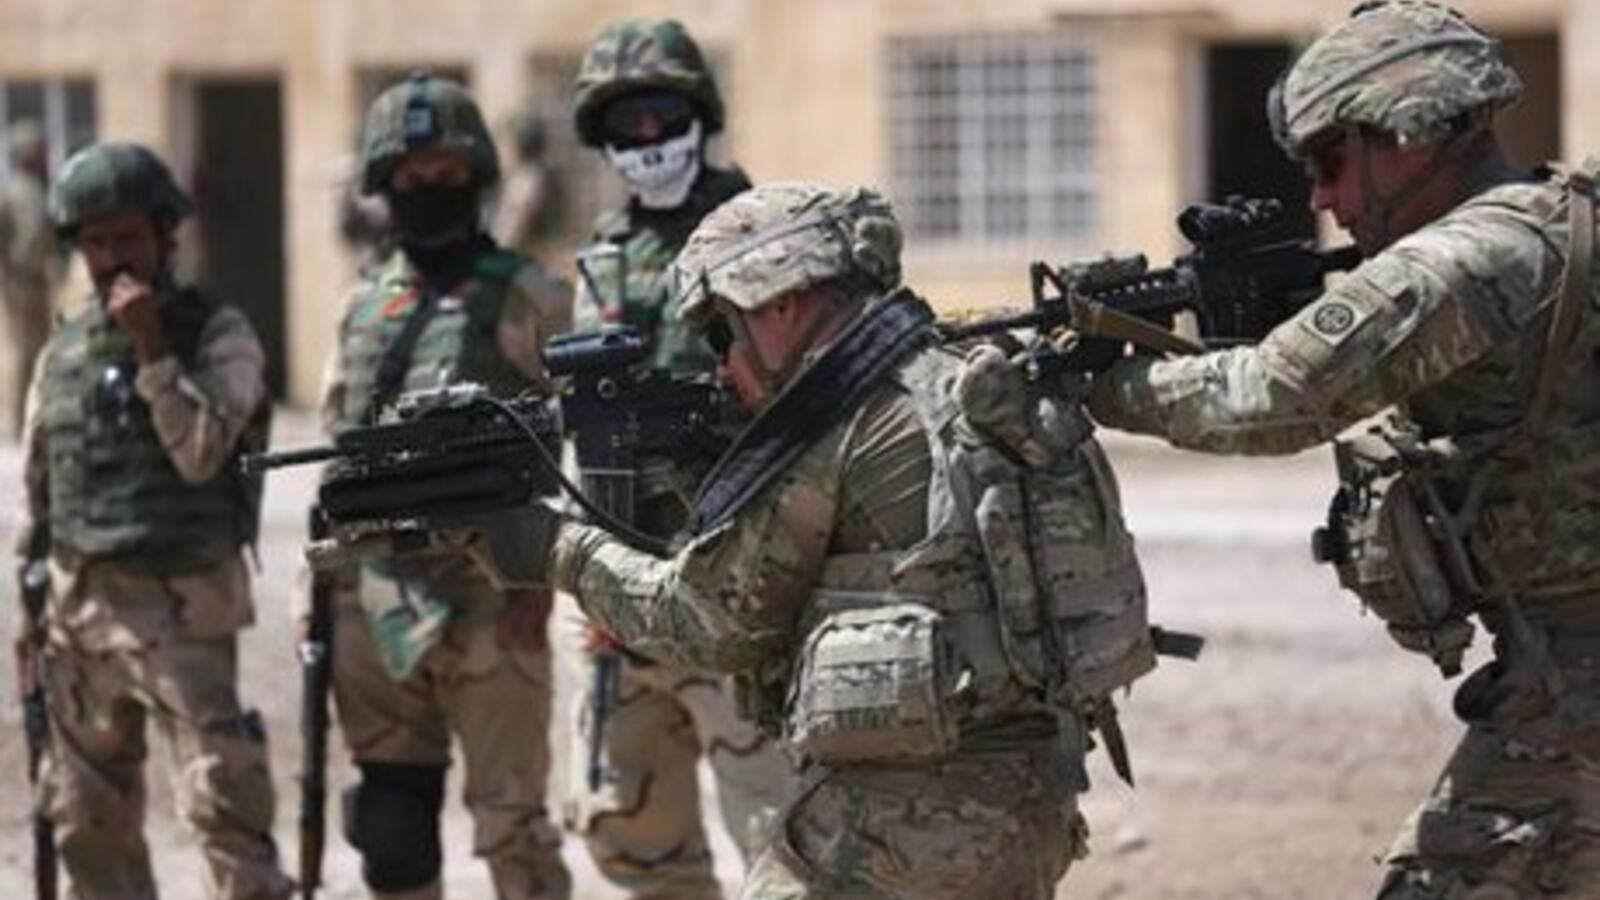 Some 500 additional US military advisers have arrived in Iraq since summer. (AFP/ File)